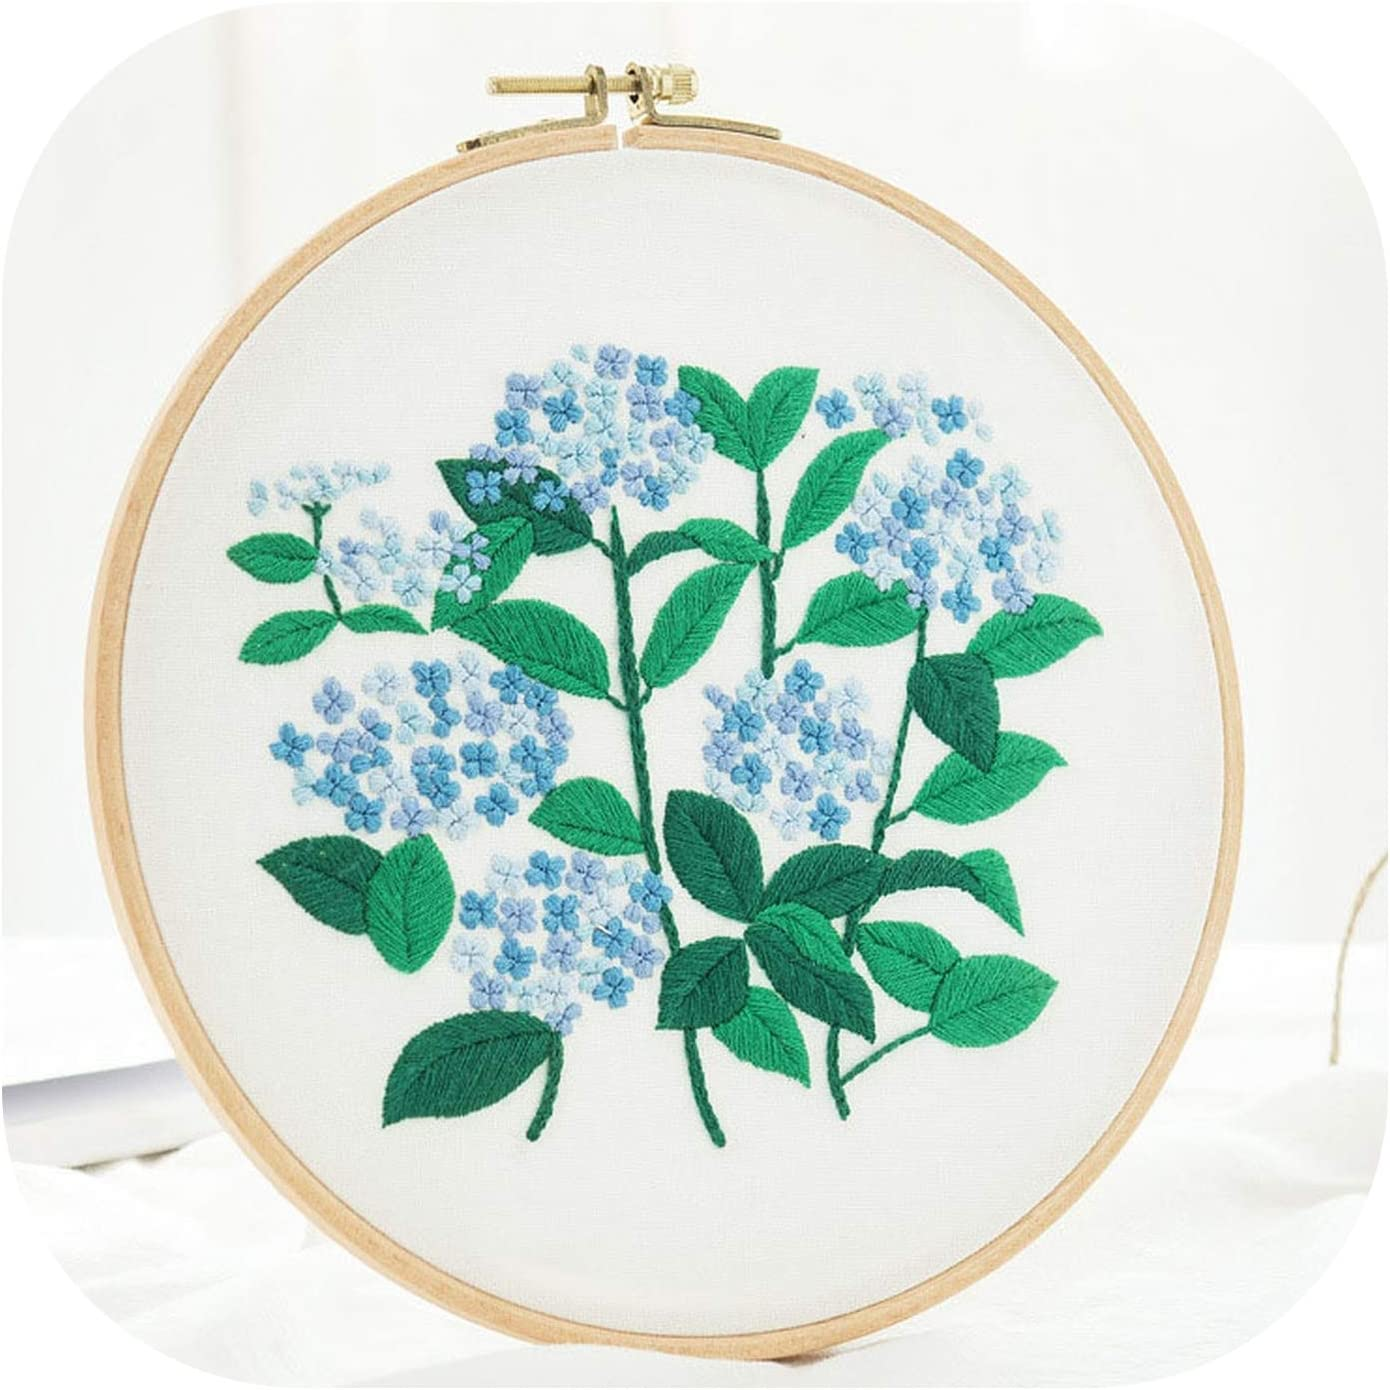 Embroidery DIY Cross Stitch Kits Flower Patterns Needlework Set with Embroidery Hoop Handmade Arts Crafts Sewing Home Decor Gift,2,20cm Bamboo Hoop kit